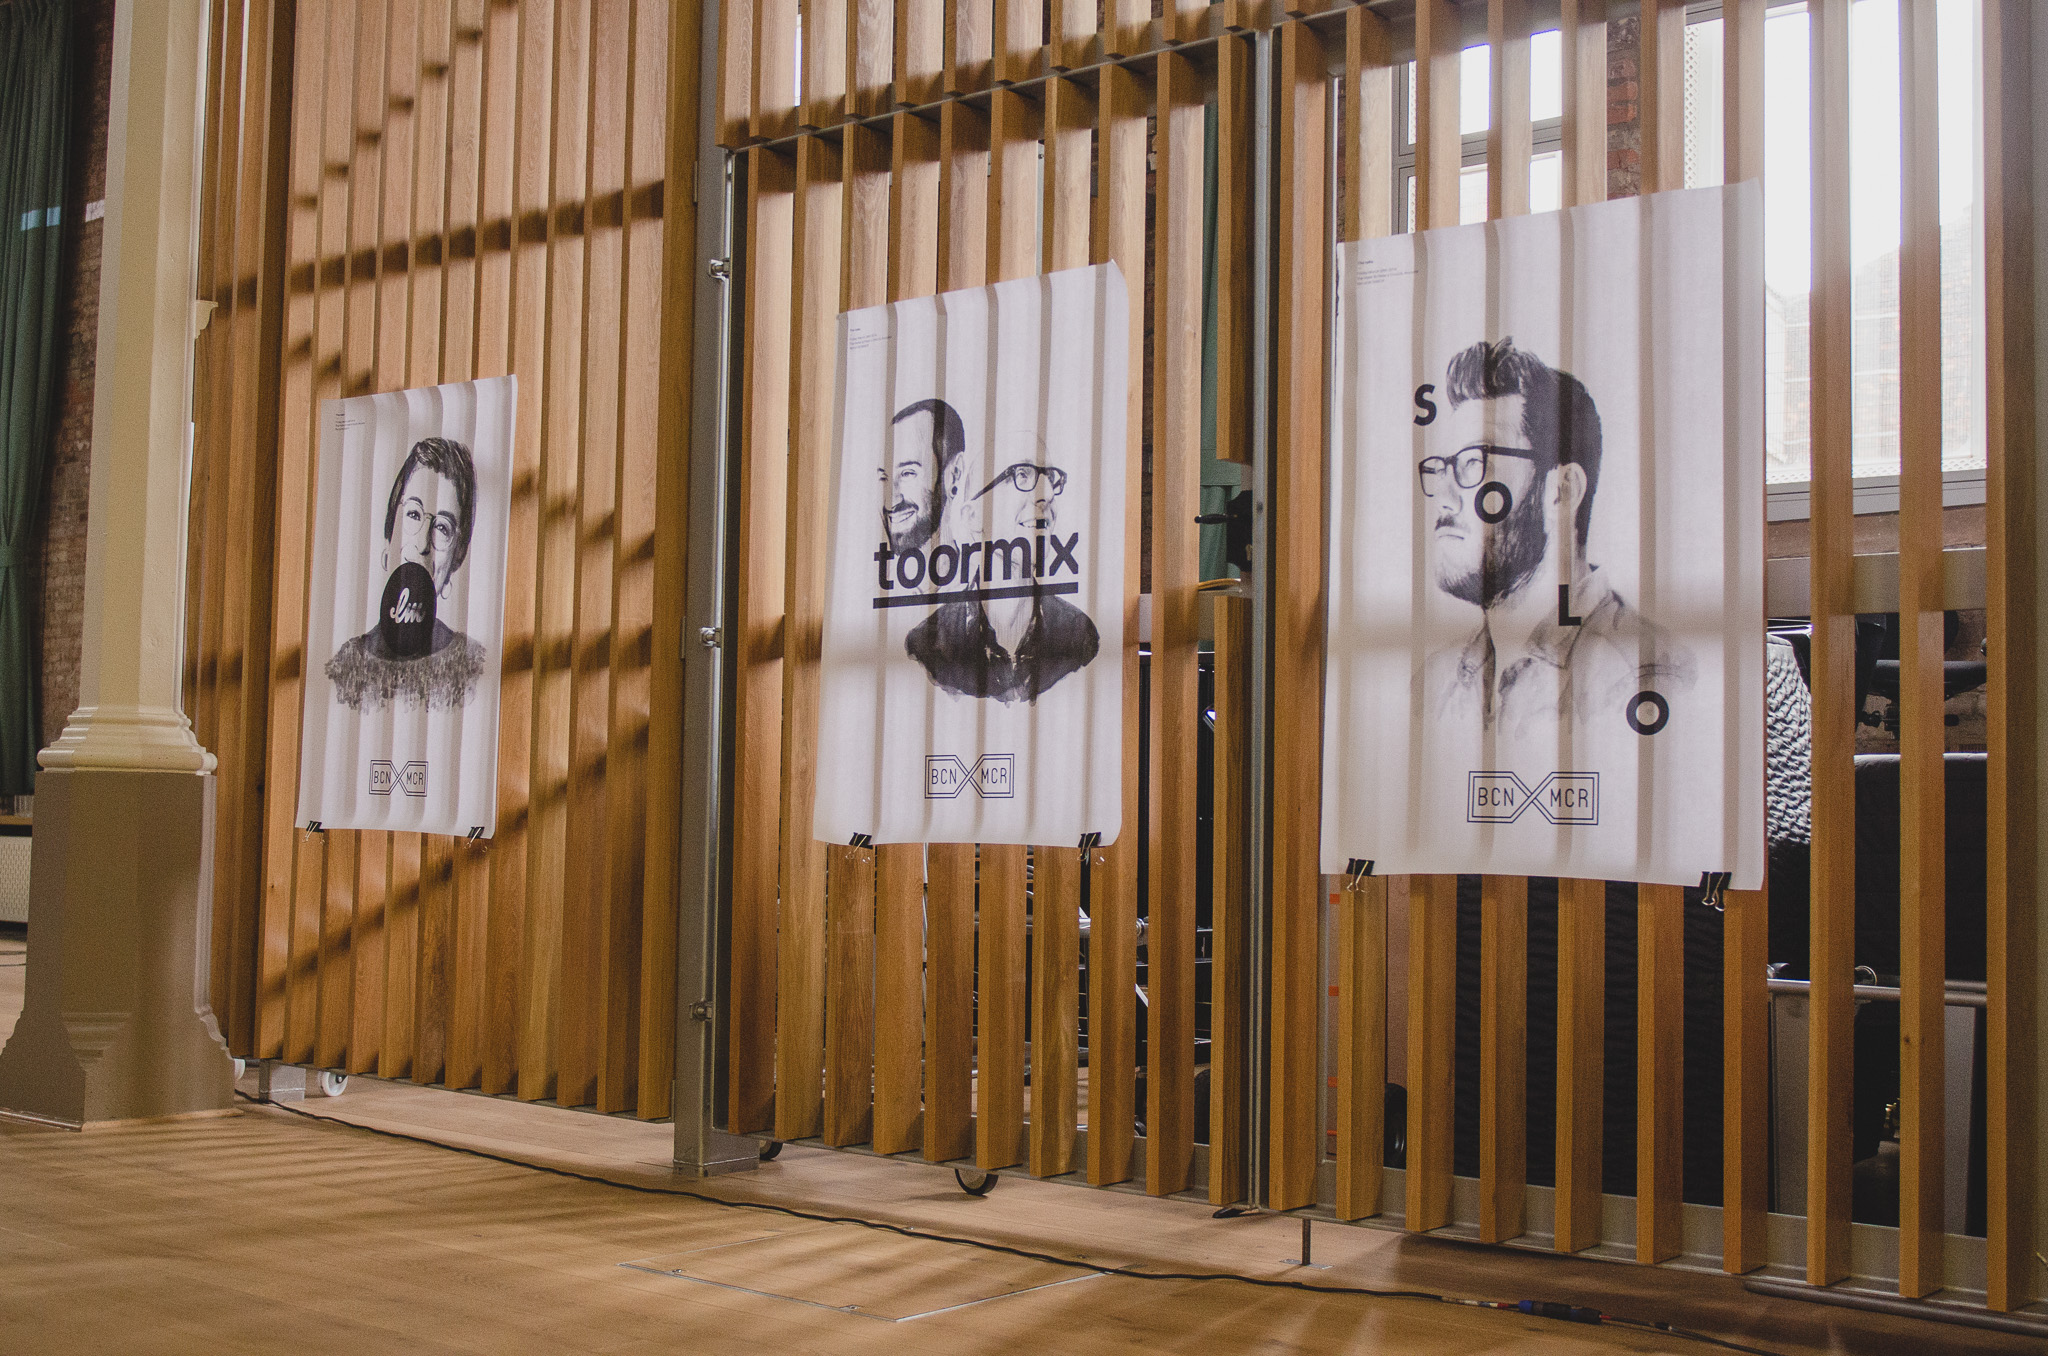 Custom Lettering and lecture: BCNMCR Project